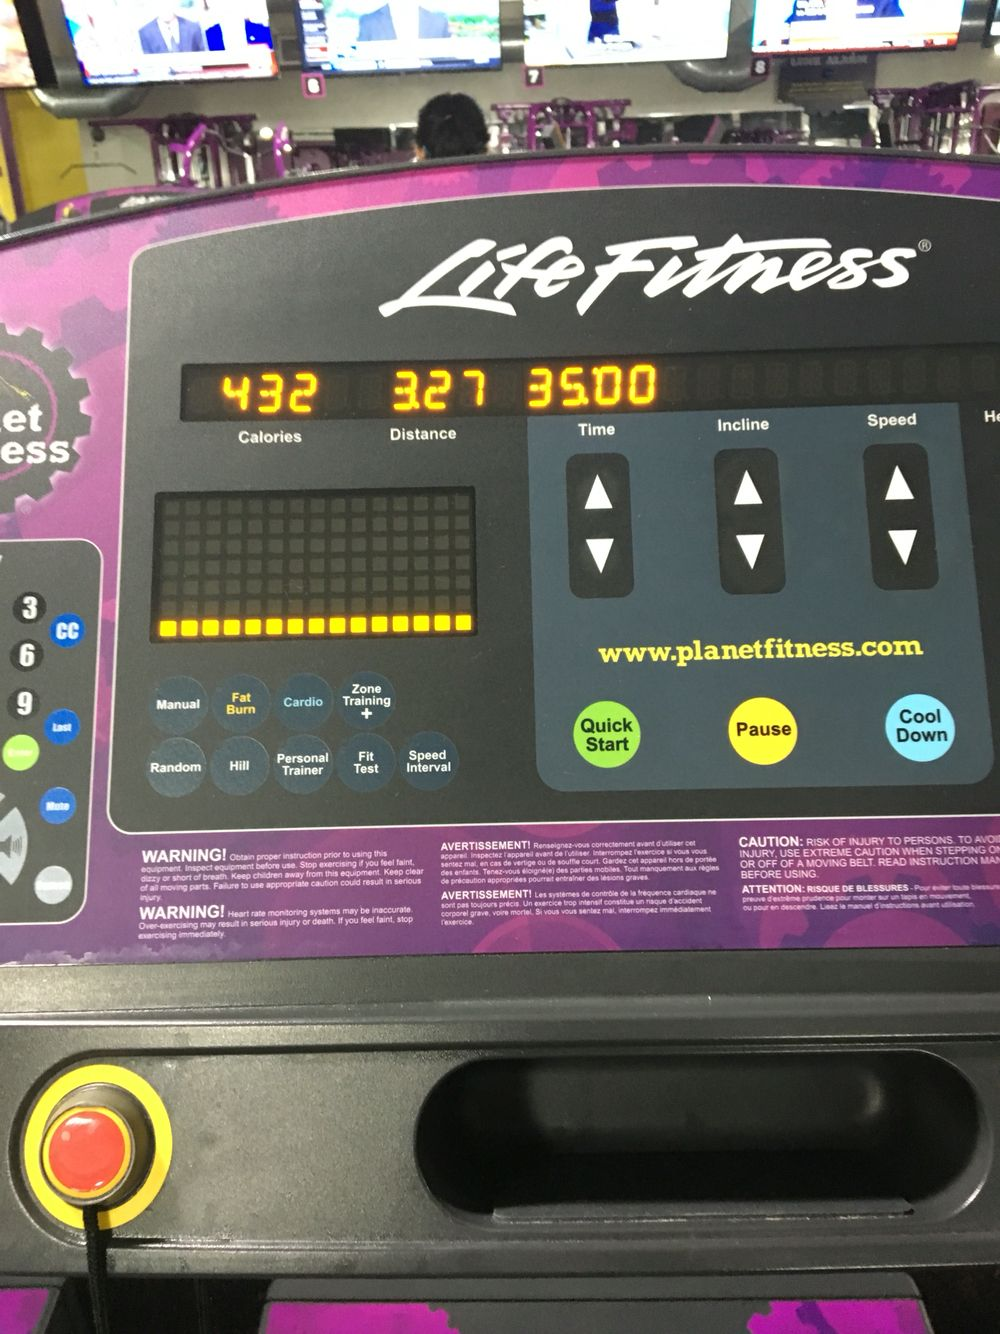 808 treadmill fitness workout cardio stairmaster